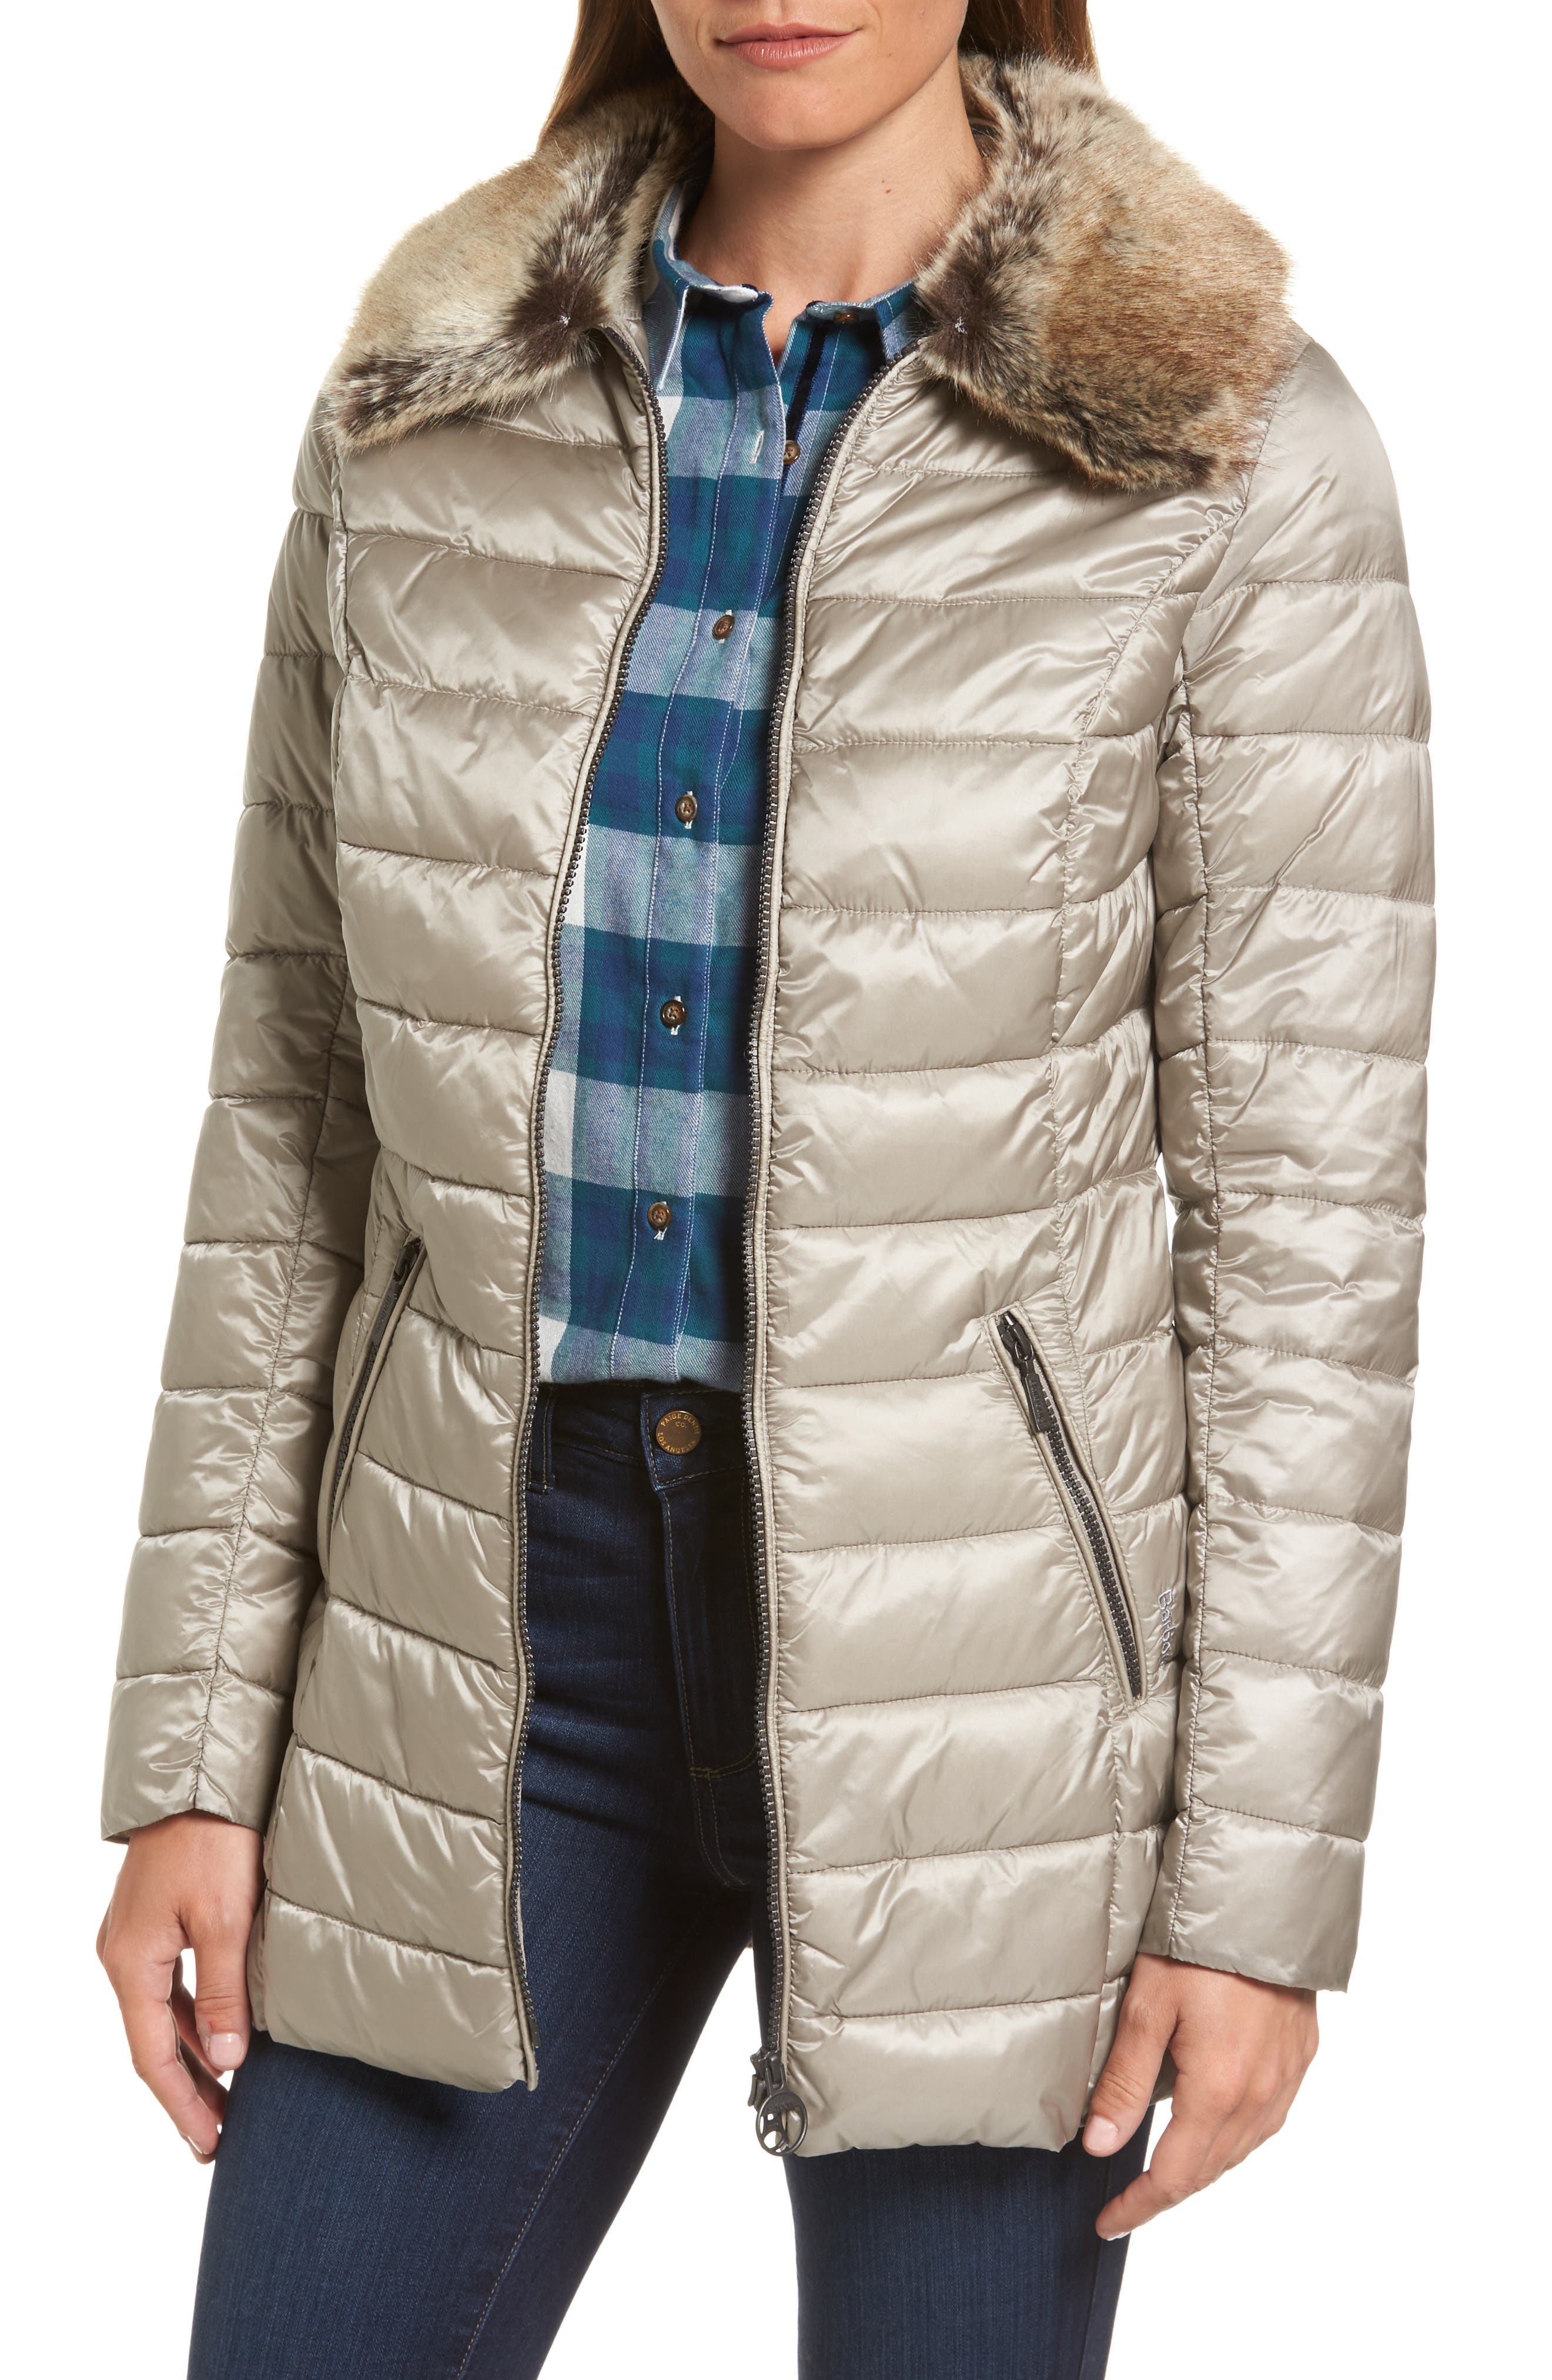 Rambleton Water Resistant Quilted Jacket with Faux Fur Collar,                         Main,                         color, Taupe